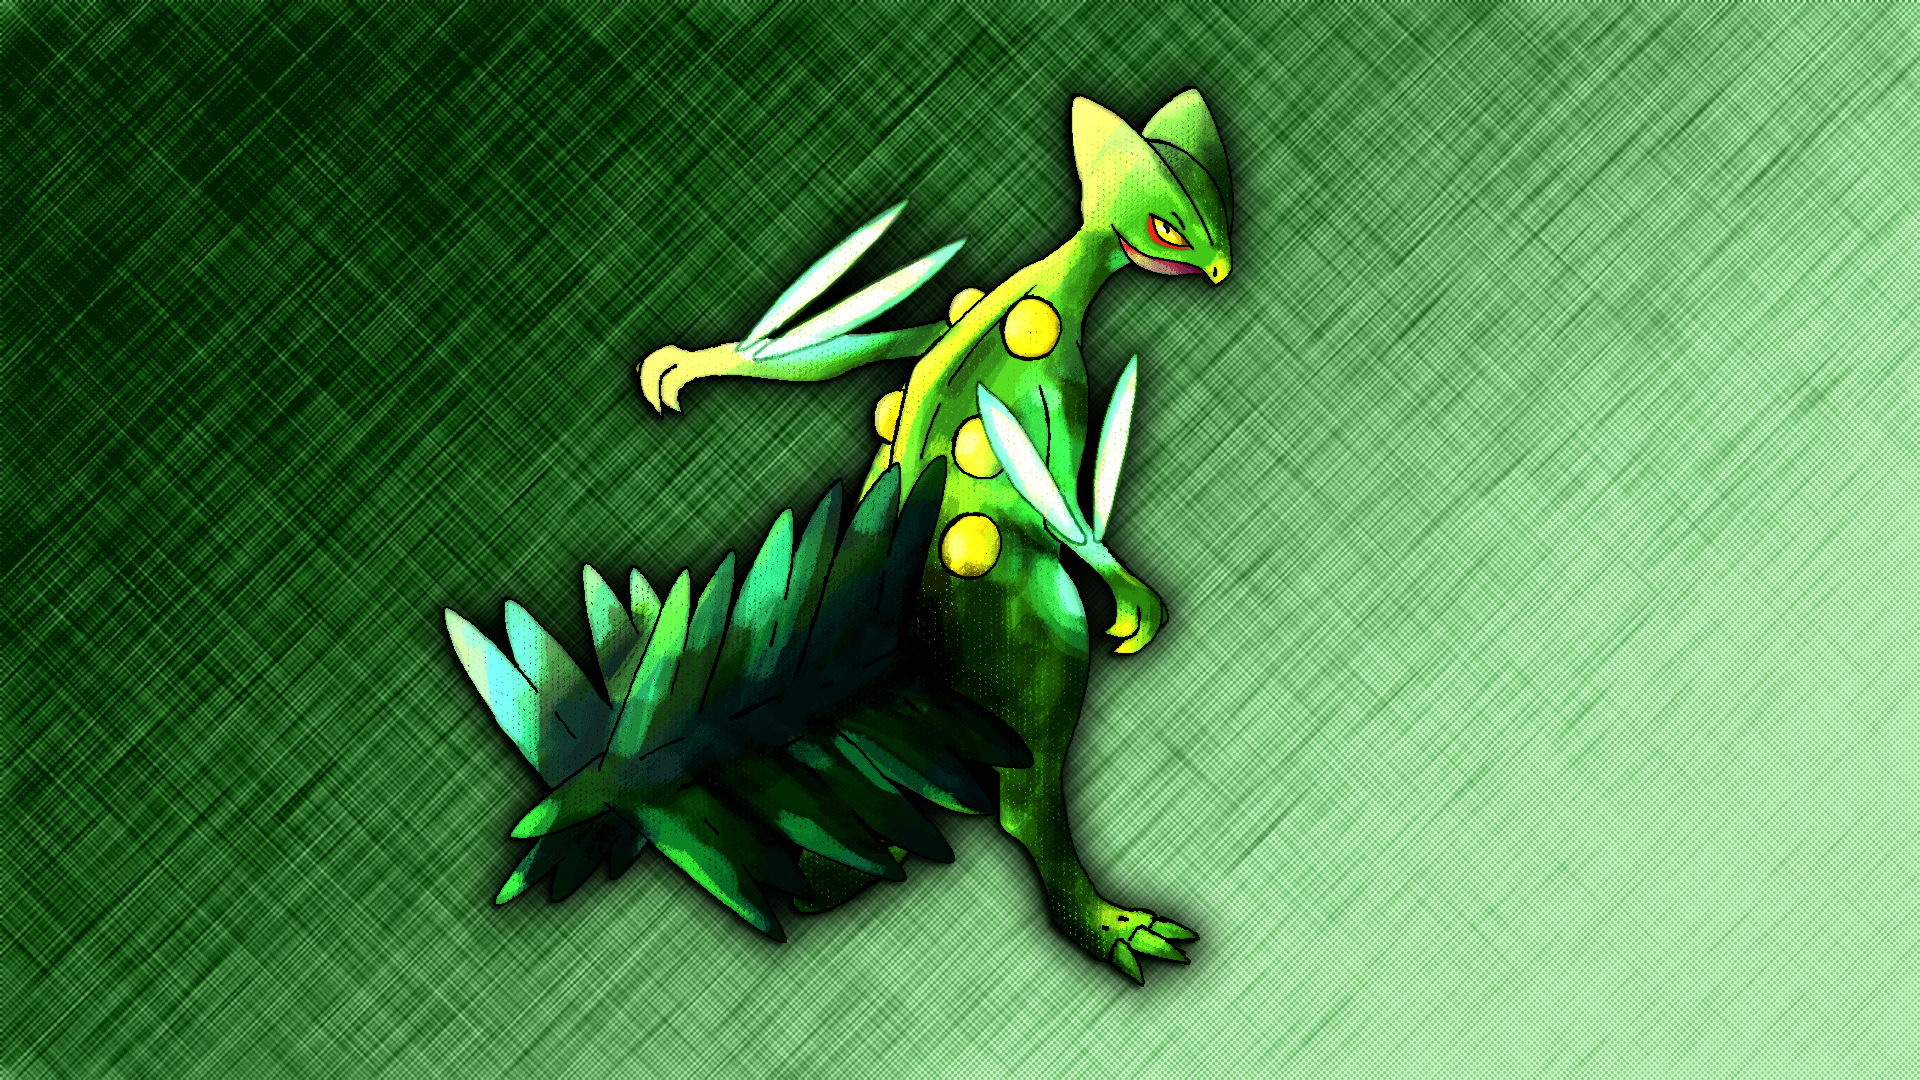 Sceptile Wallpapers by Glench